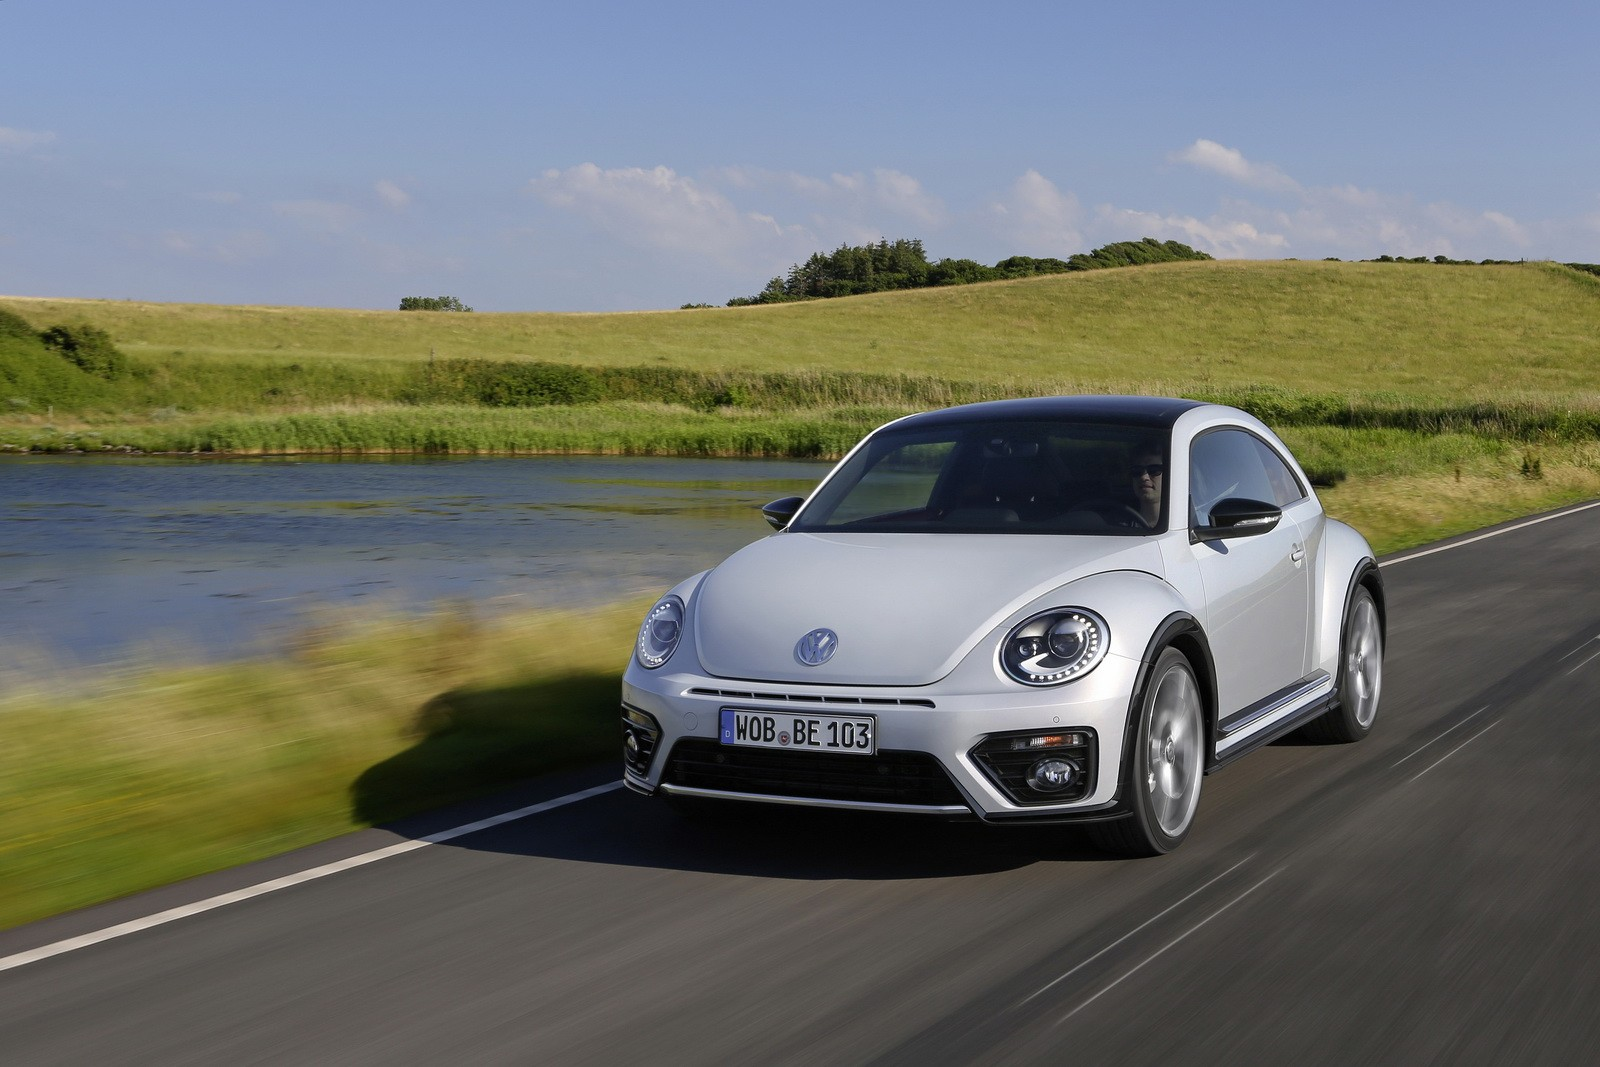 2017 Volkswagen Beetle Detailed in New Photos and Videos ...